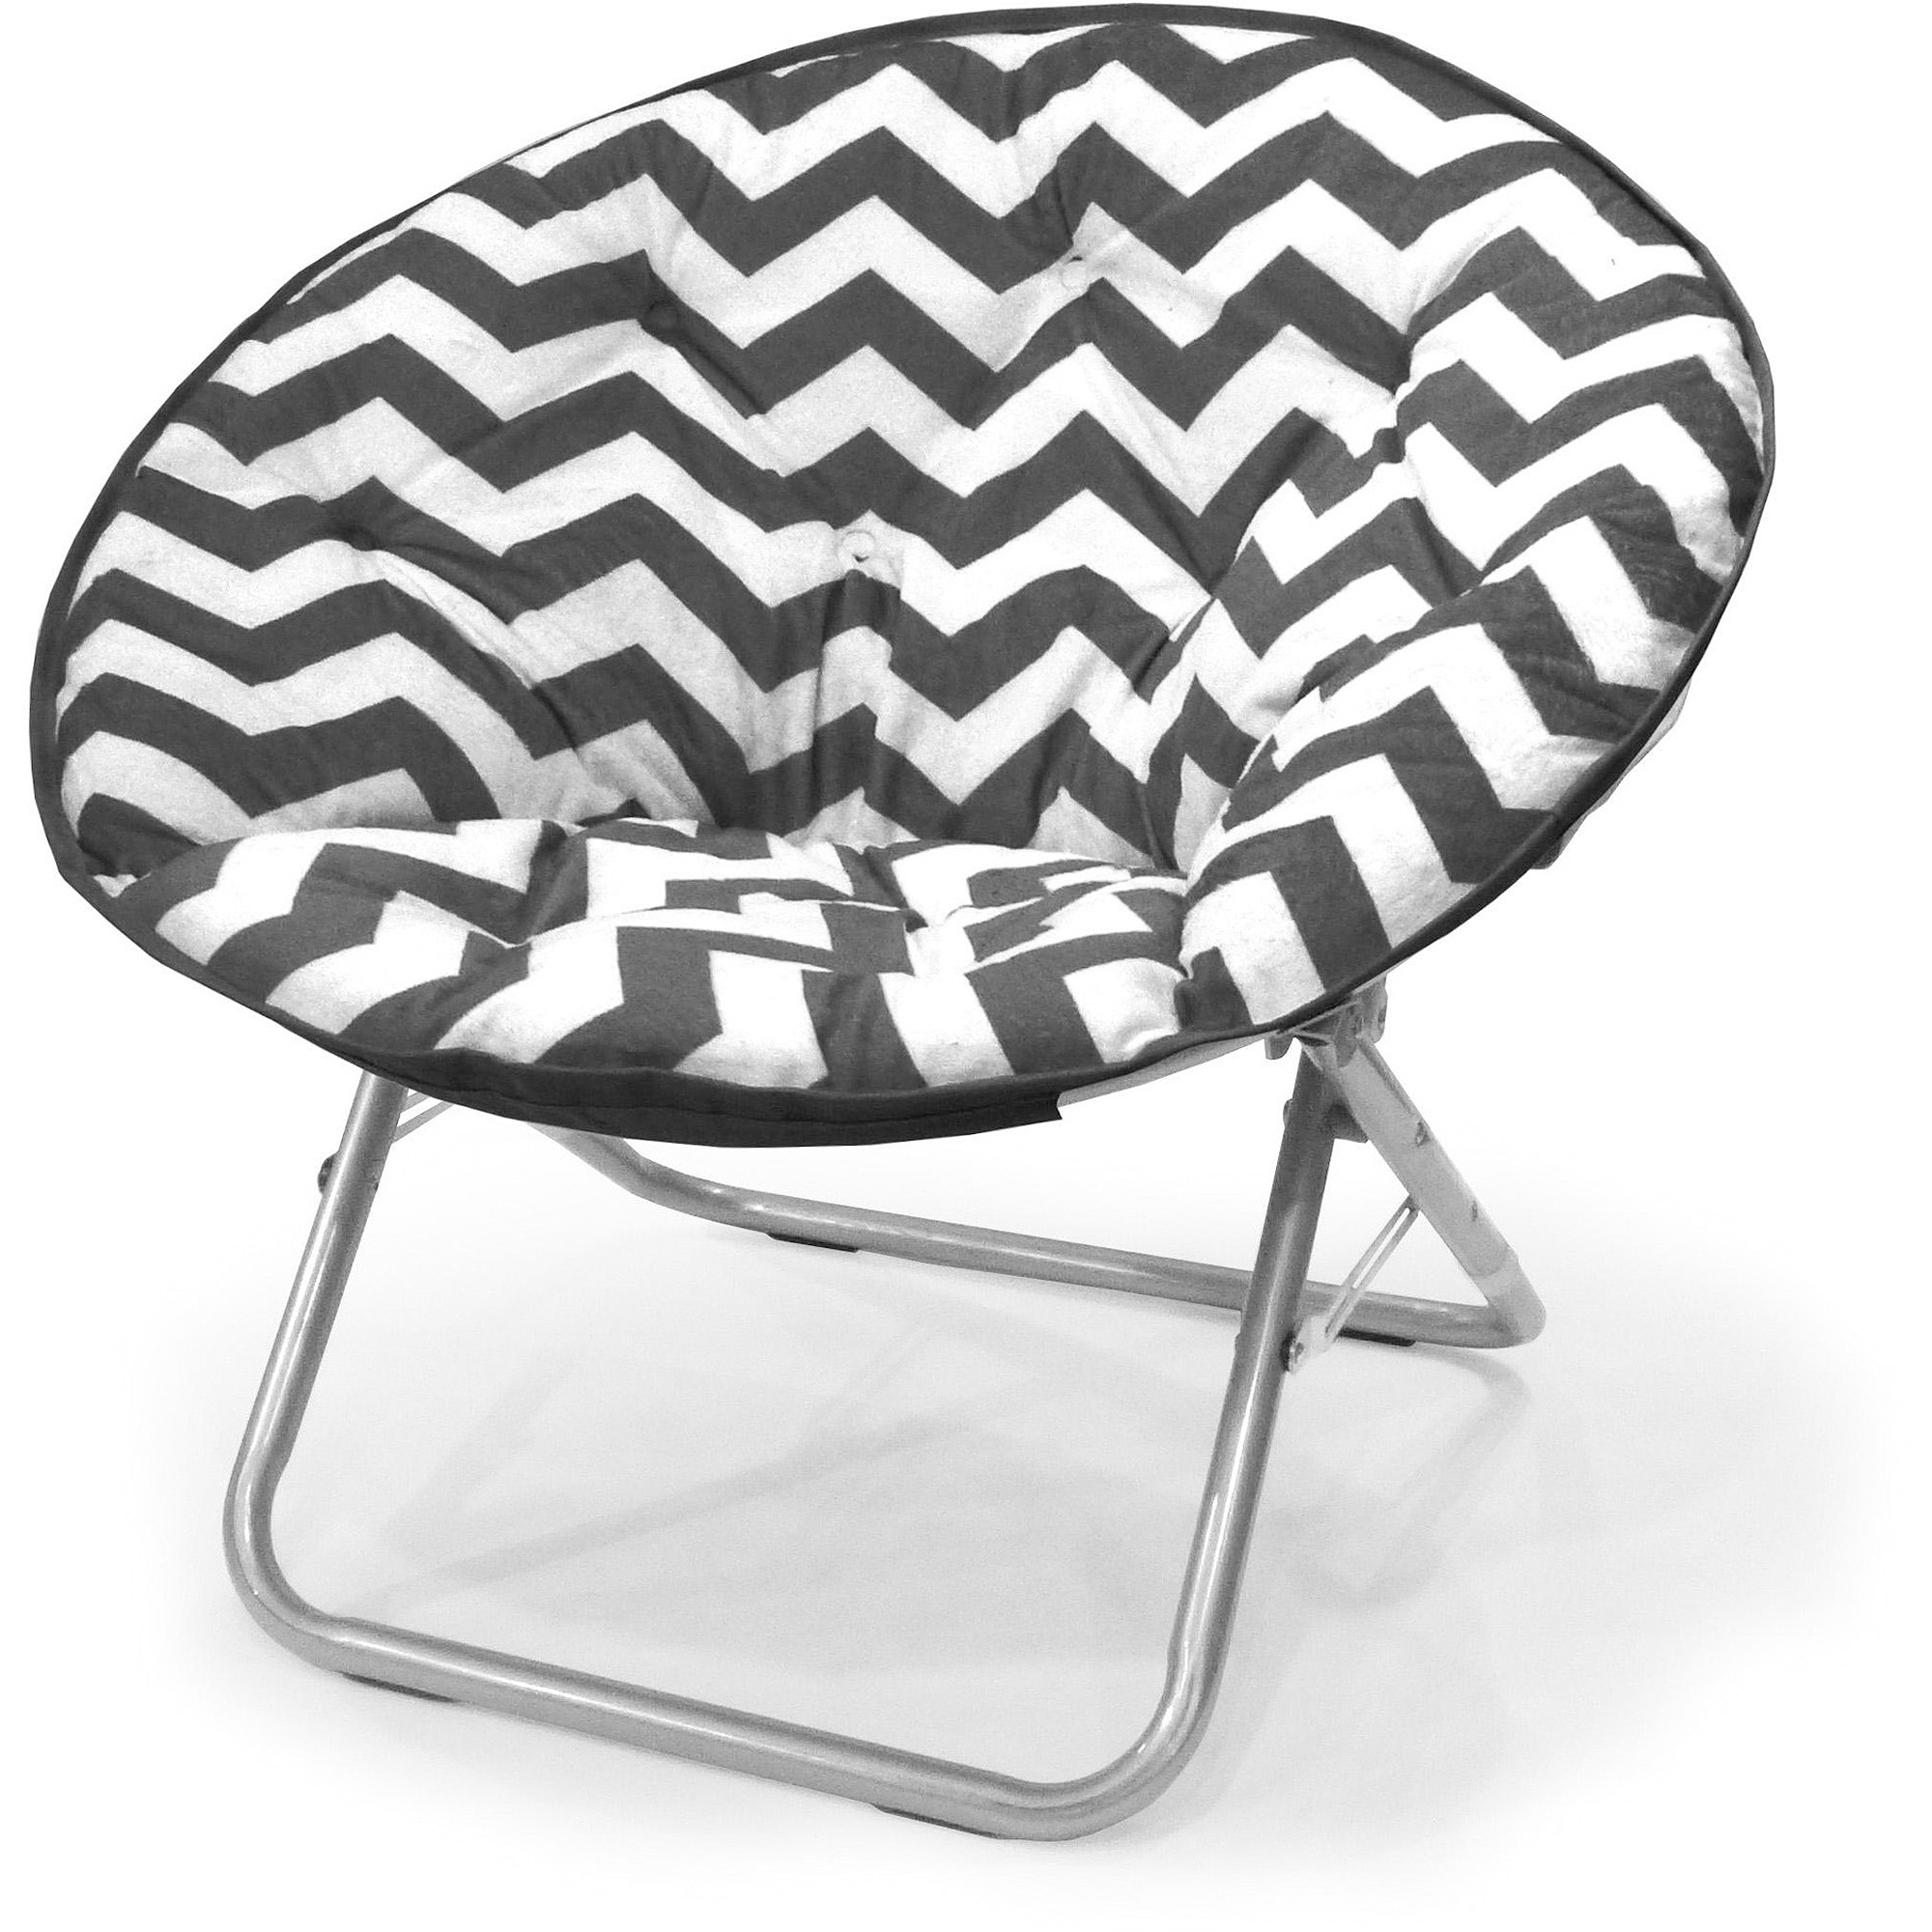 Urban Shop Chevron Saucer Kids Chair - Walmart.com - Walmart.com